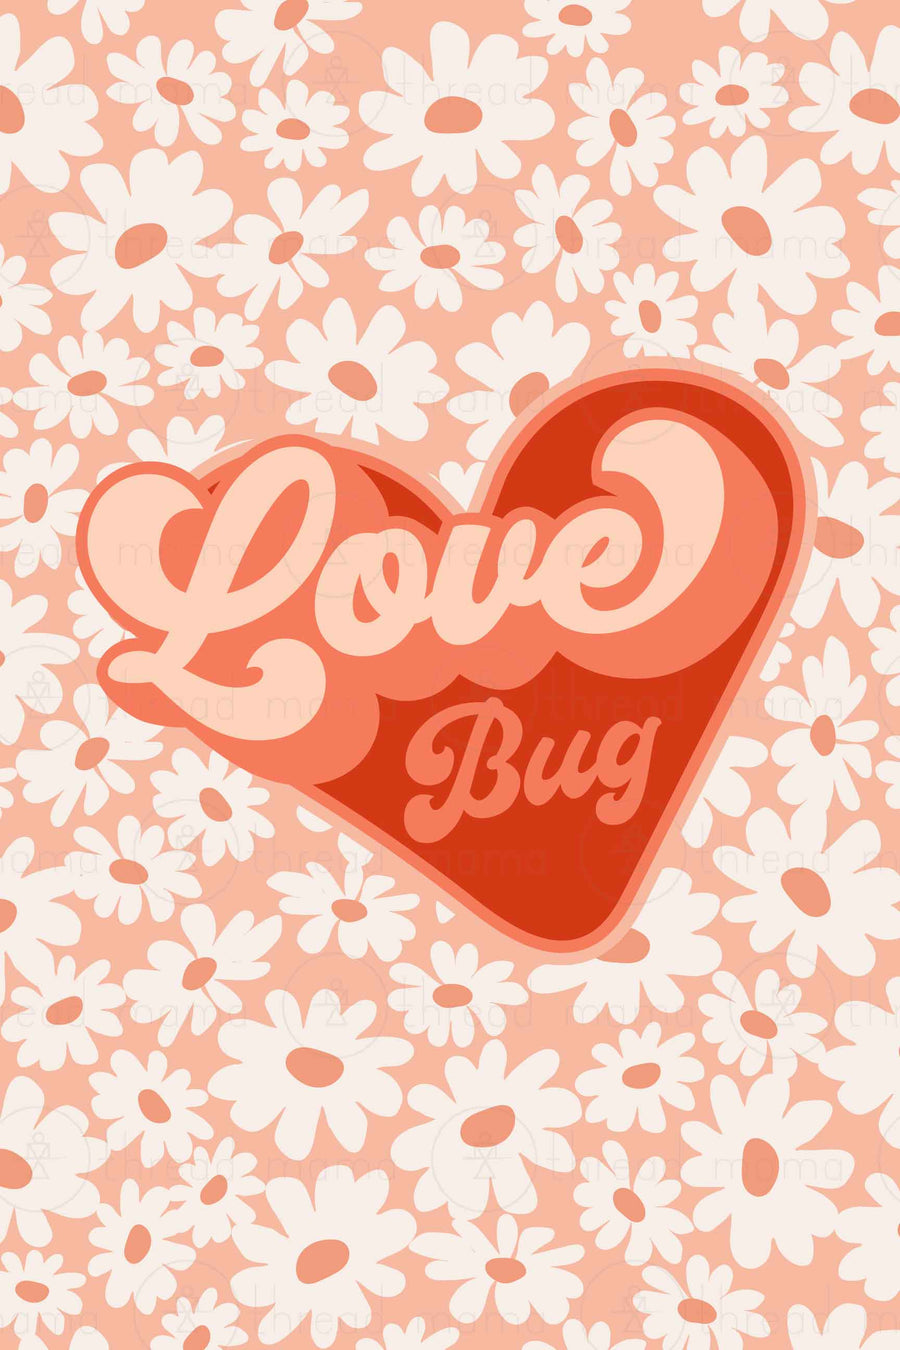 Love Bug (poster collection #1)